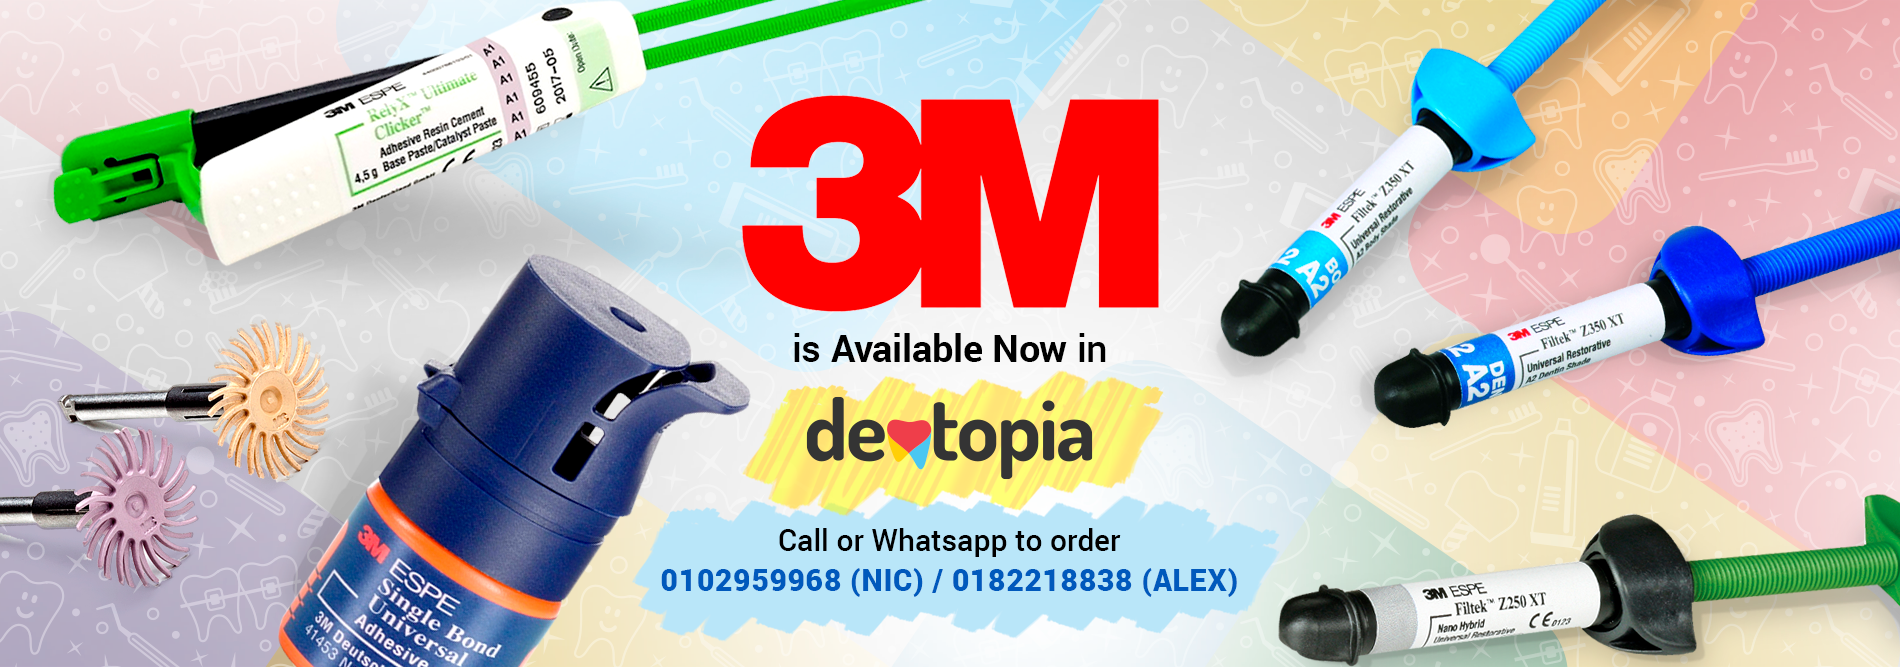 3M is Available Now in Dentopia